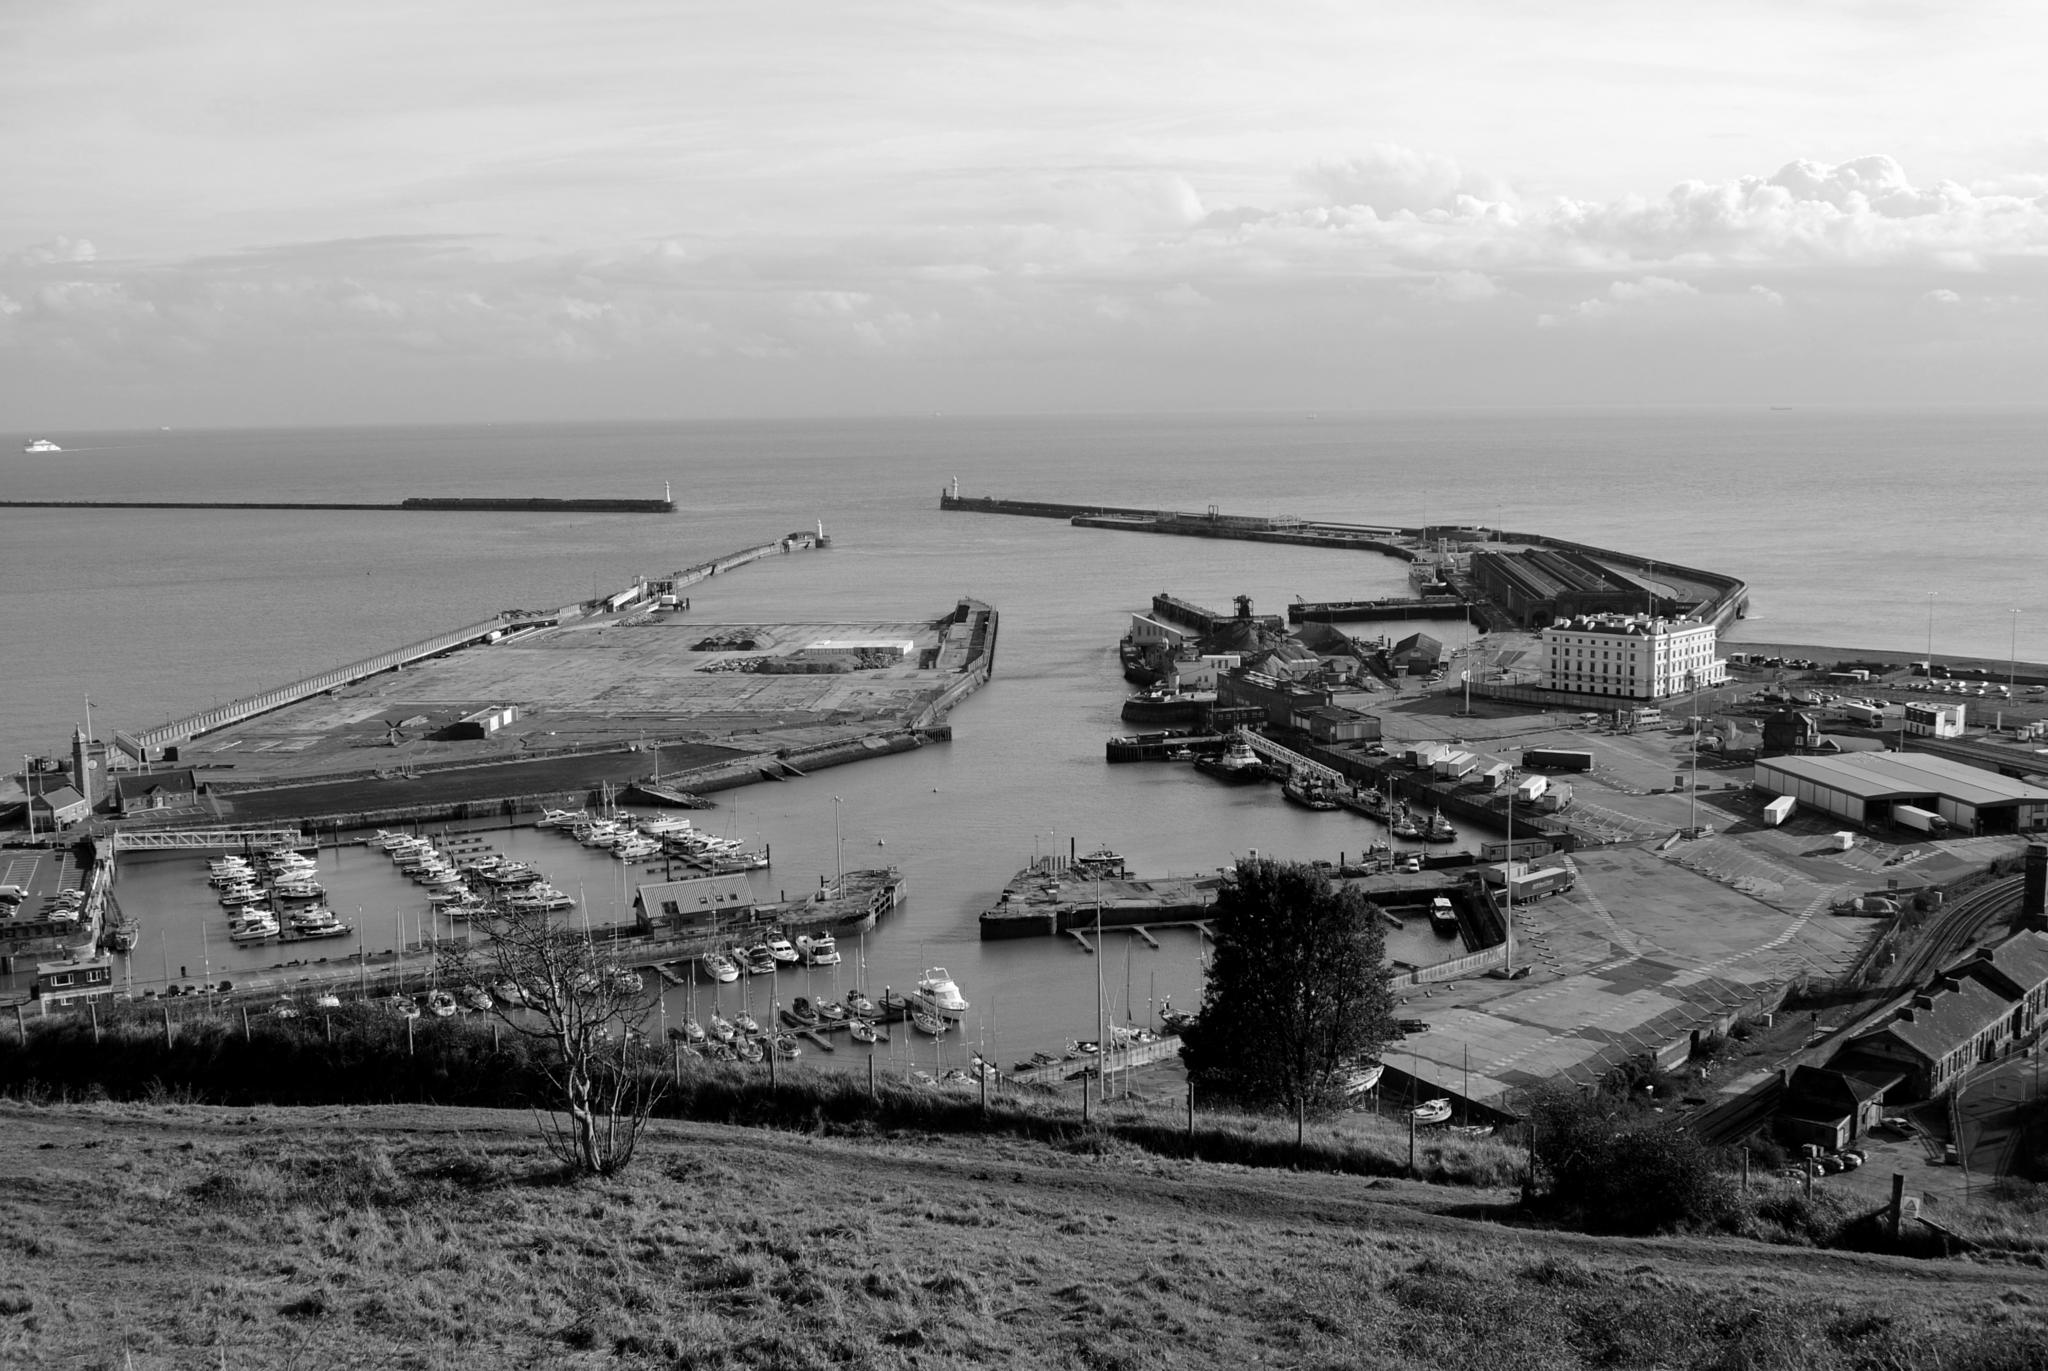 harbour view by andysnap69